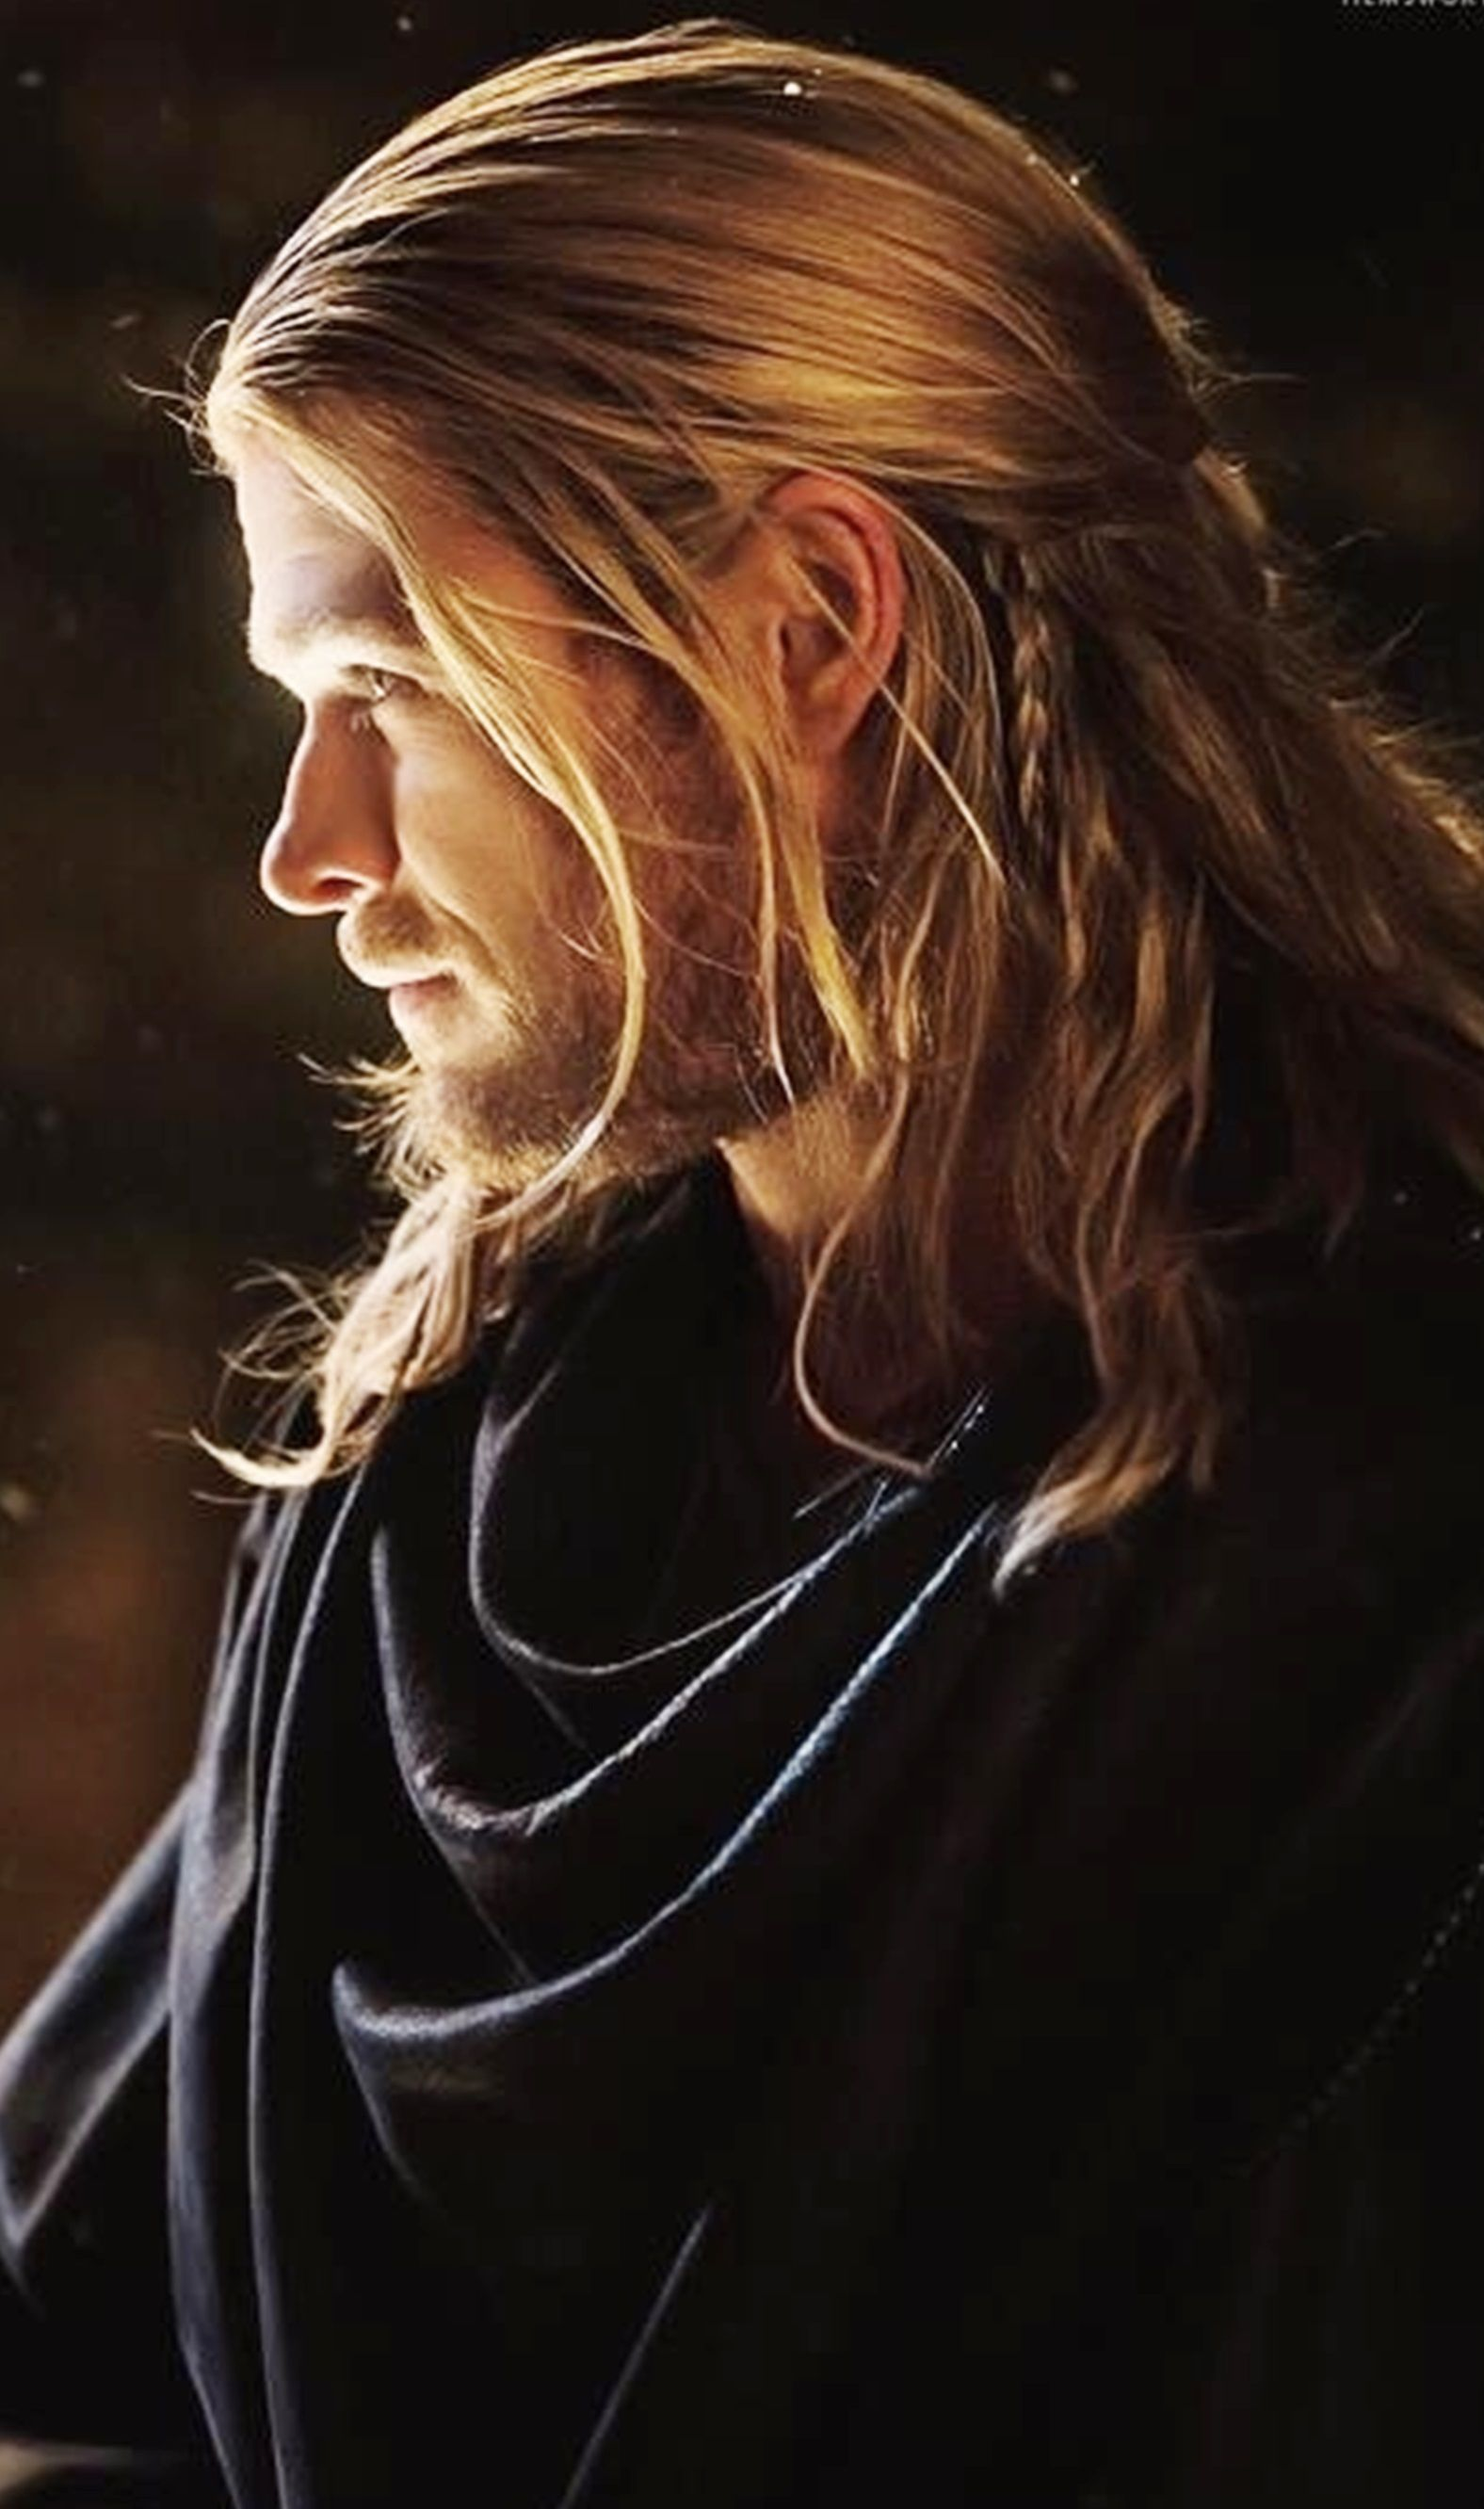 chris hemsworth as thor. i really liked his hair in the second movie